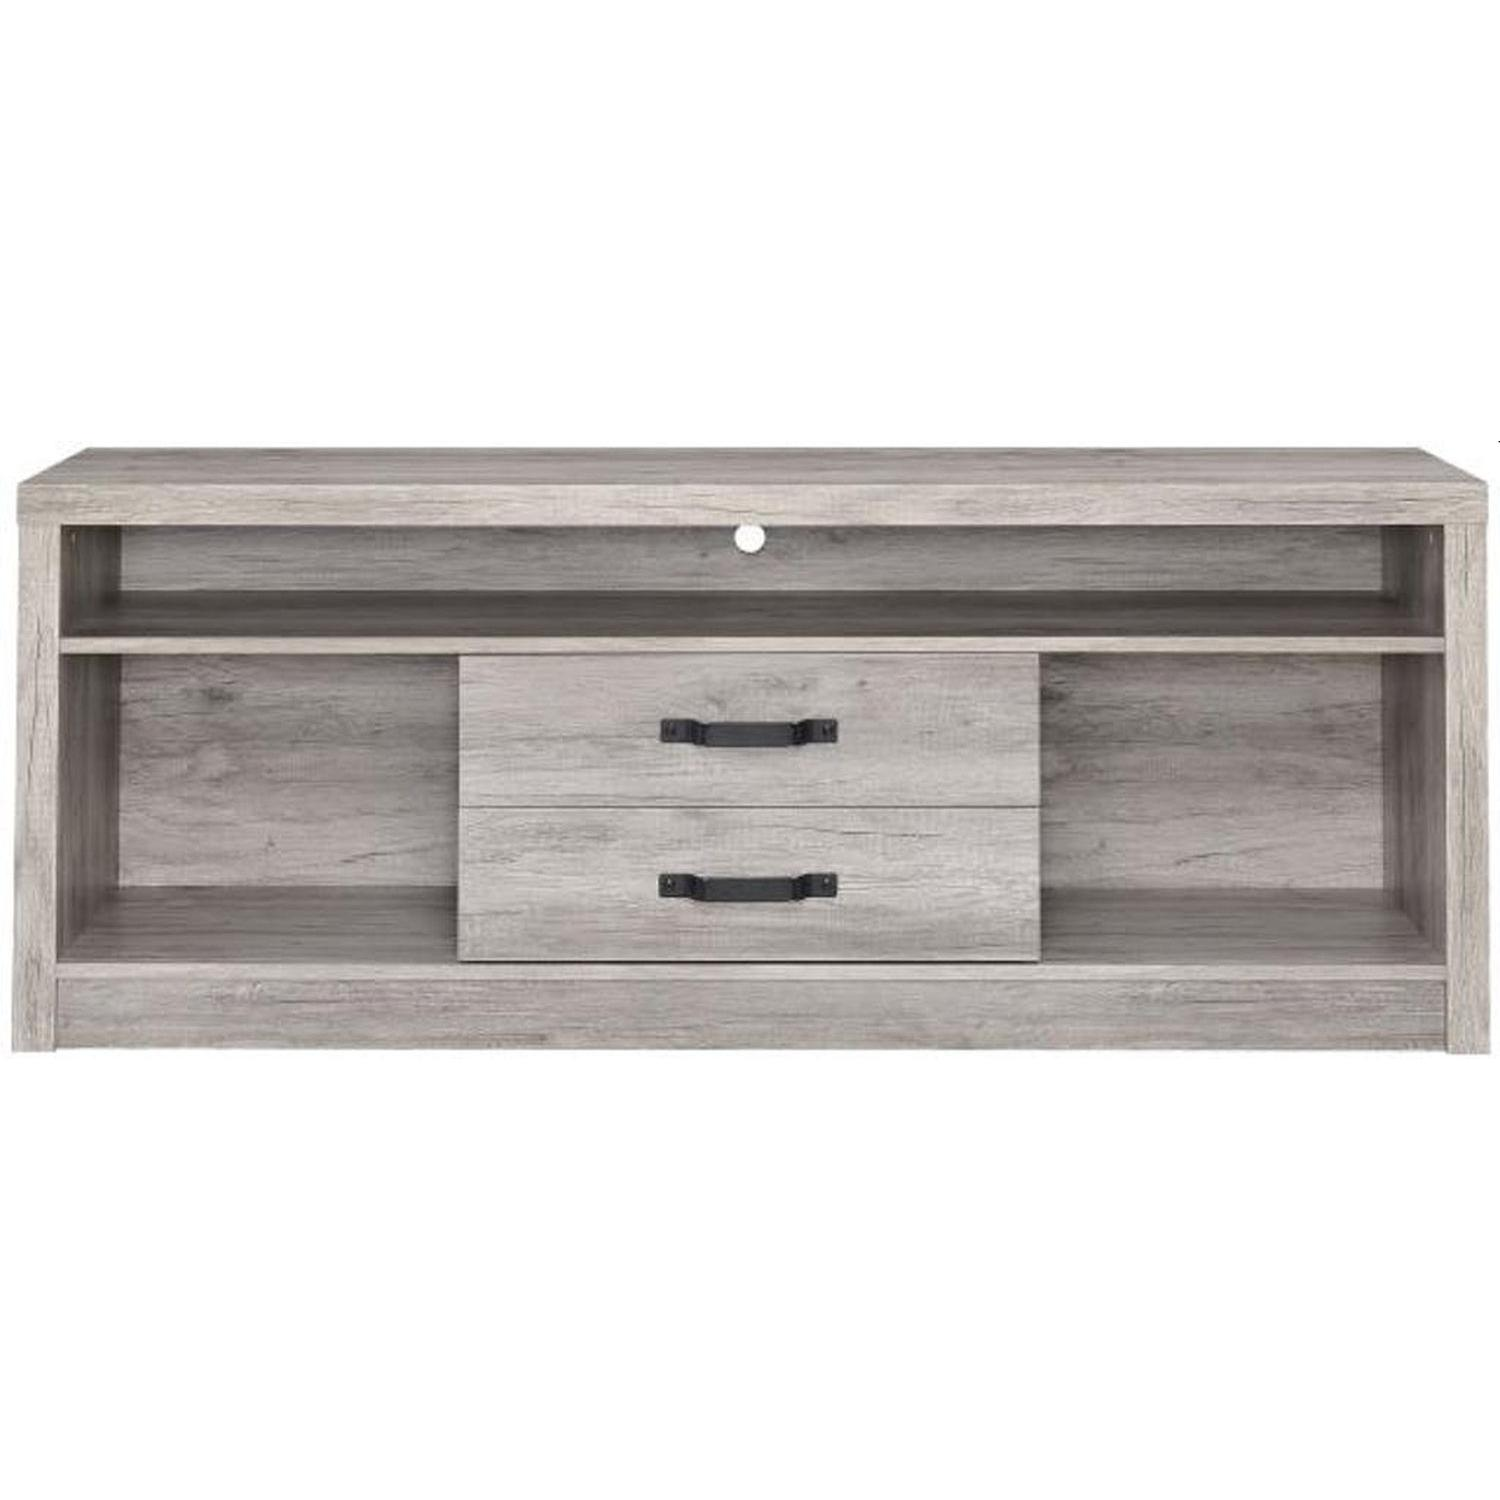 TV Stand In Rustic Oak Finish w/ 2 Cabinets & 2 Drawers - image-20